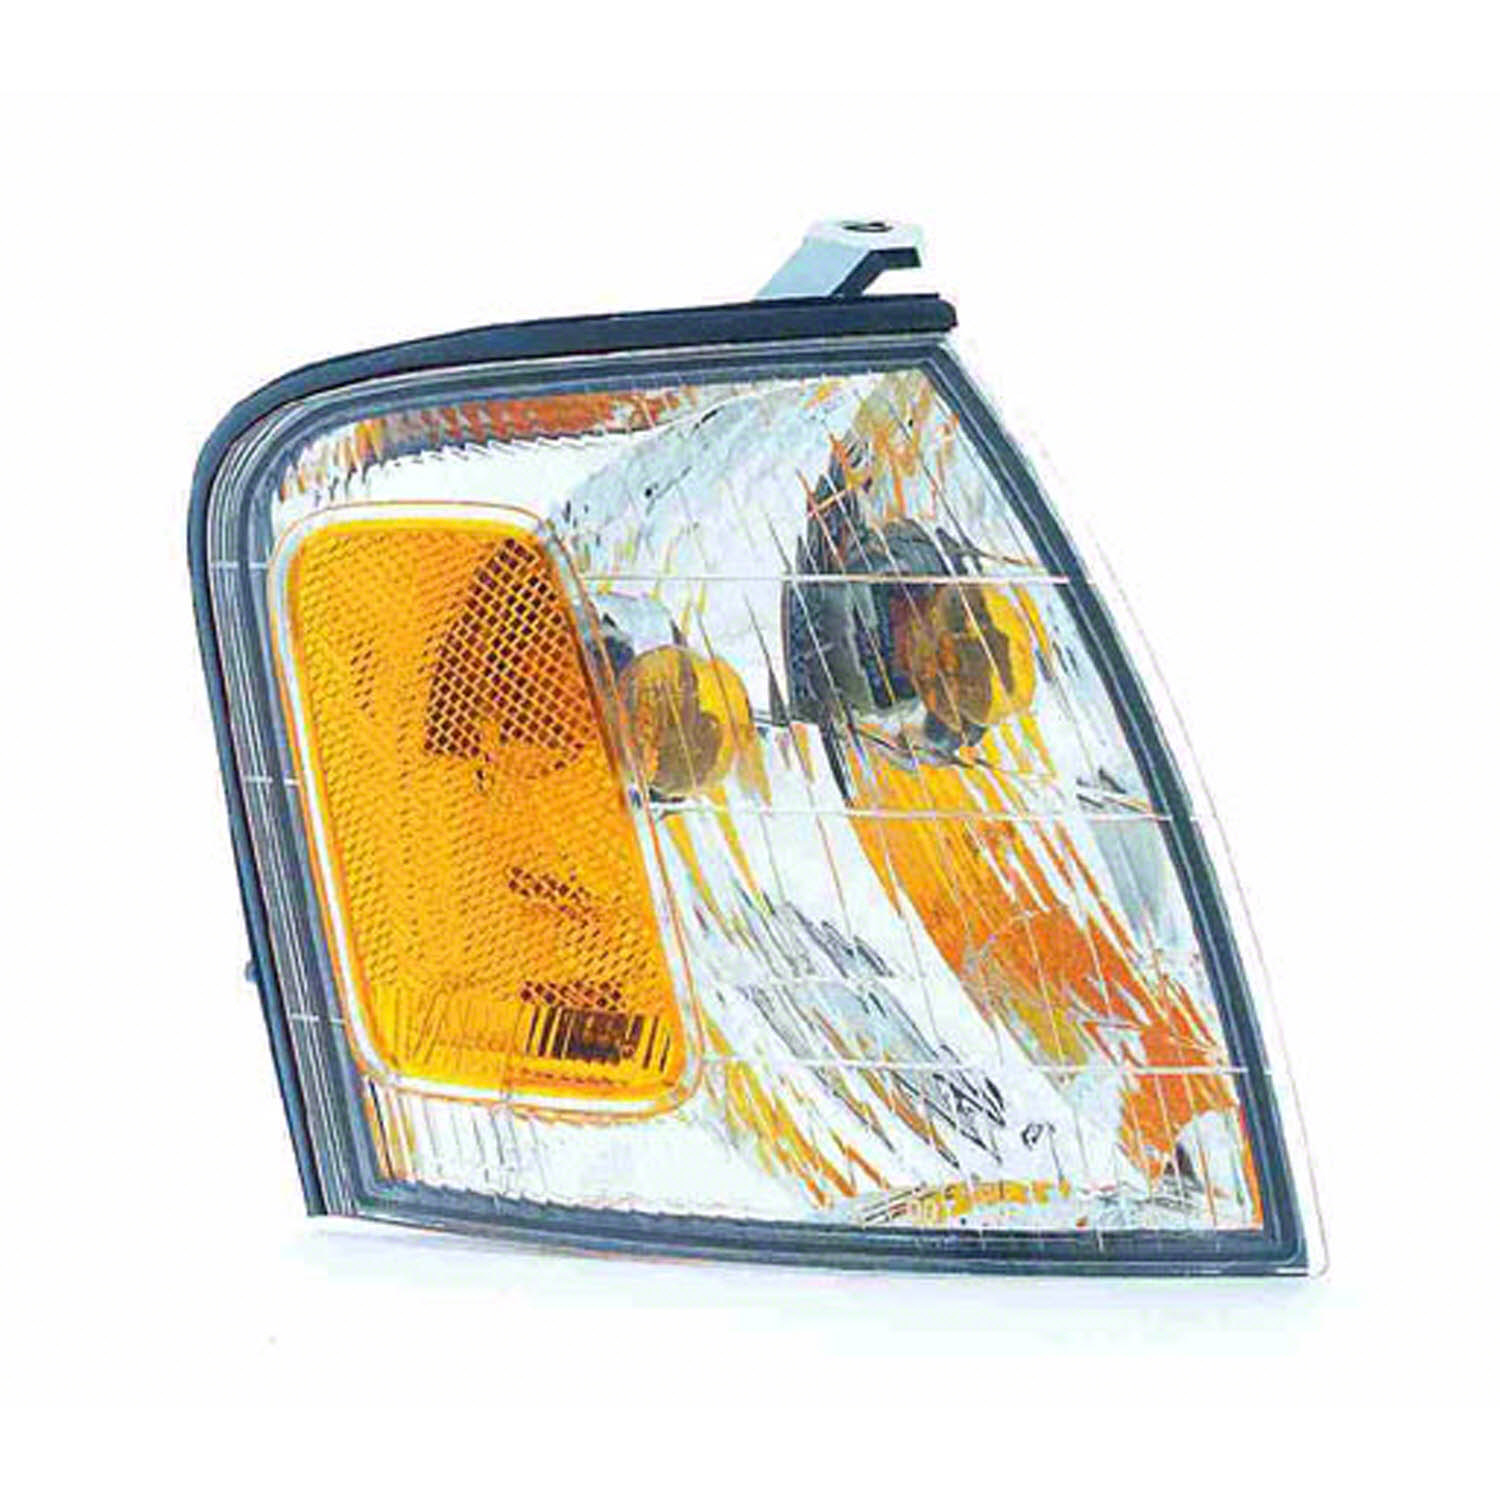 Details About Fits 1998 1999 Toyota Avalon Right Penger Side Signal Light